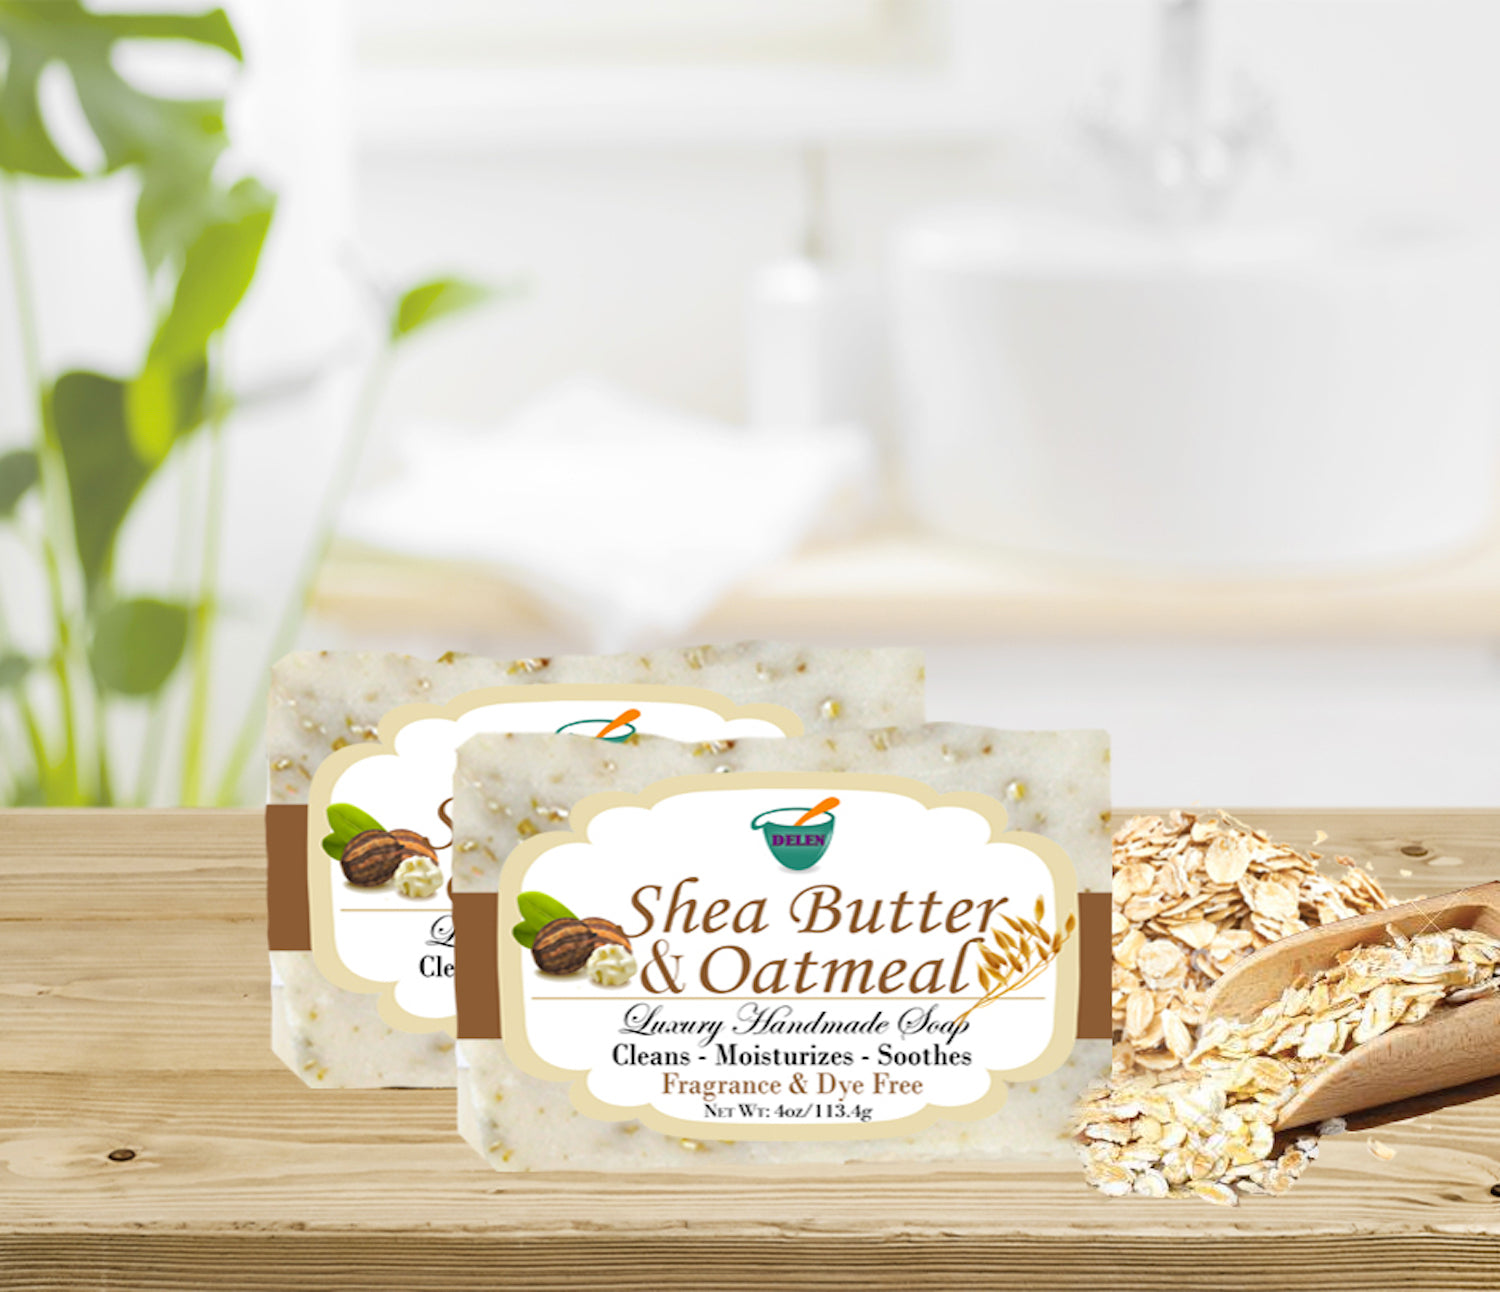 SHEA BUTTER & OATMEAL  4oz BAR SOAP